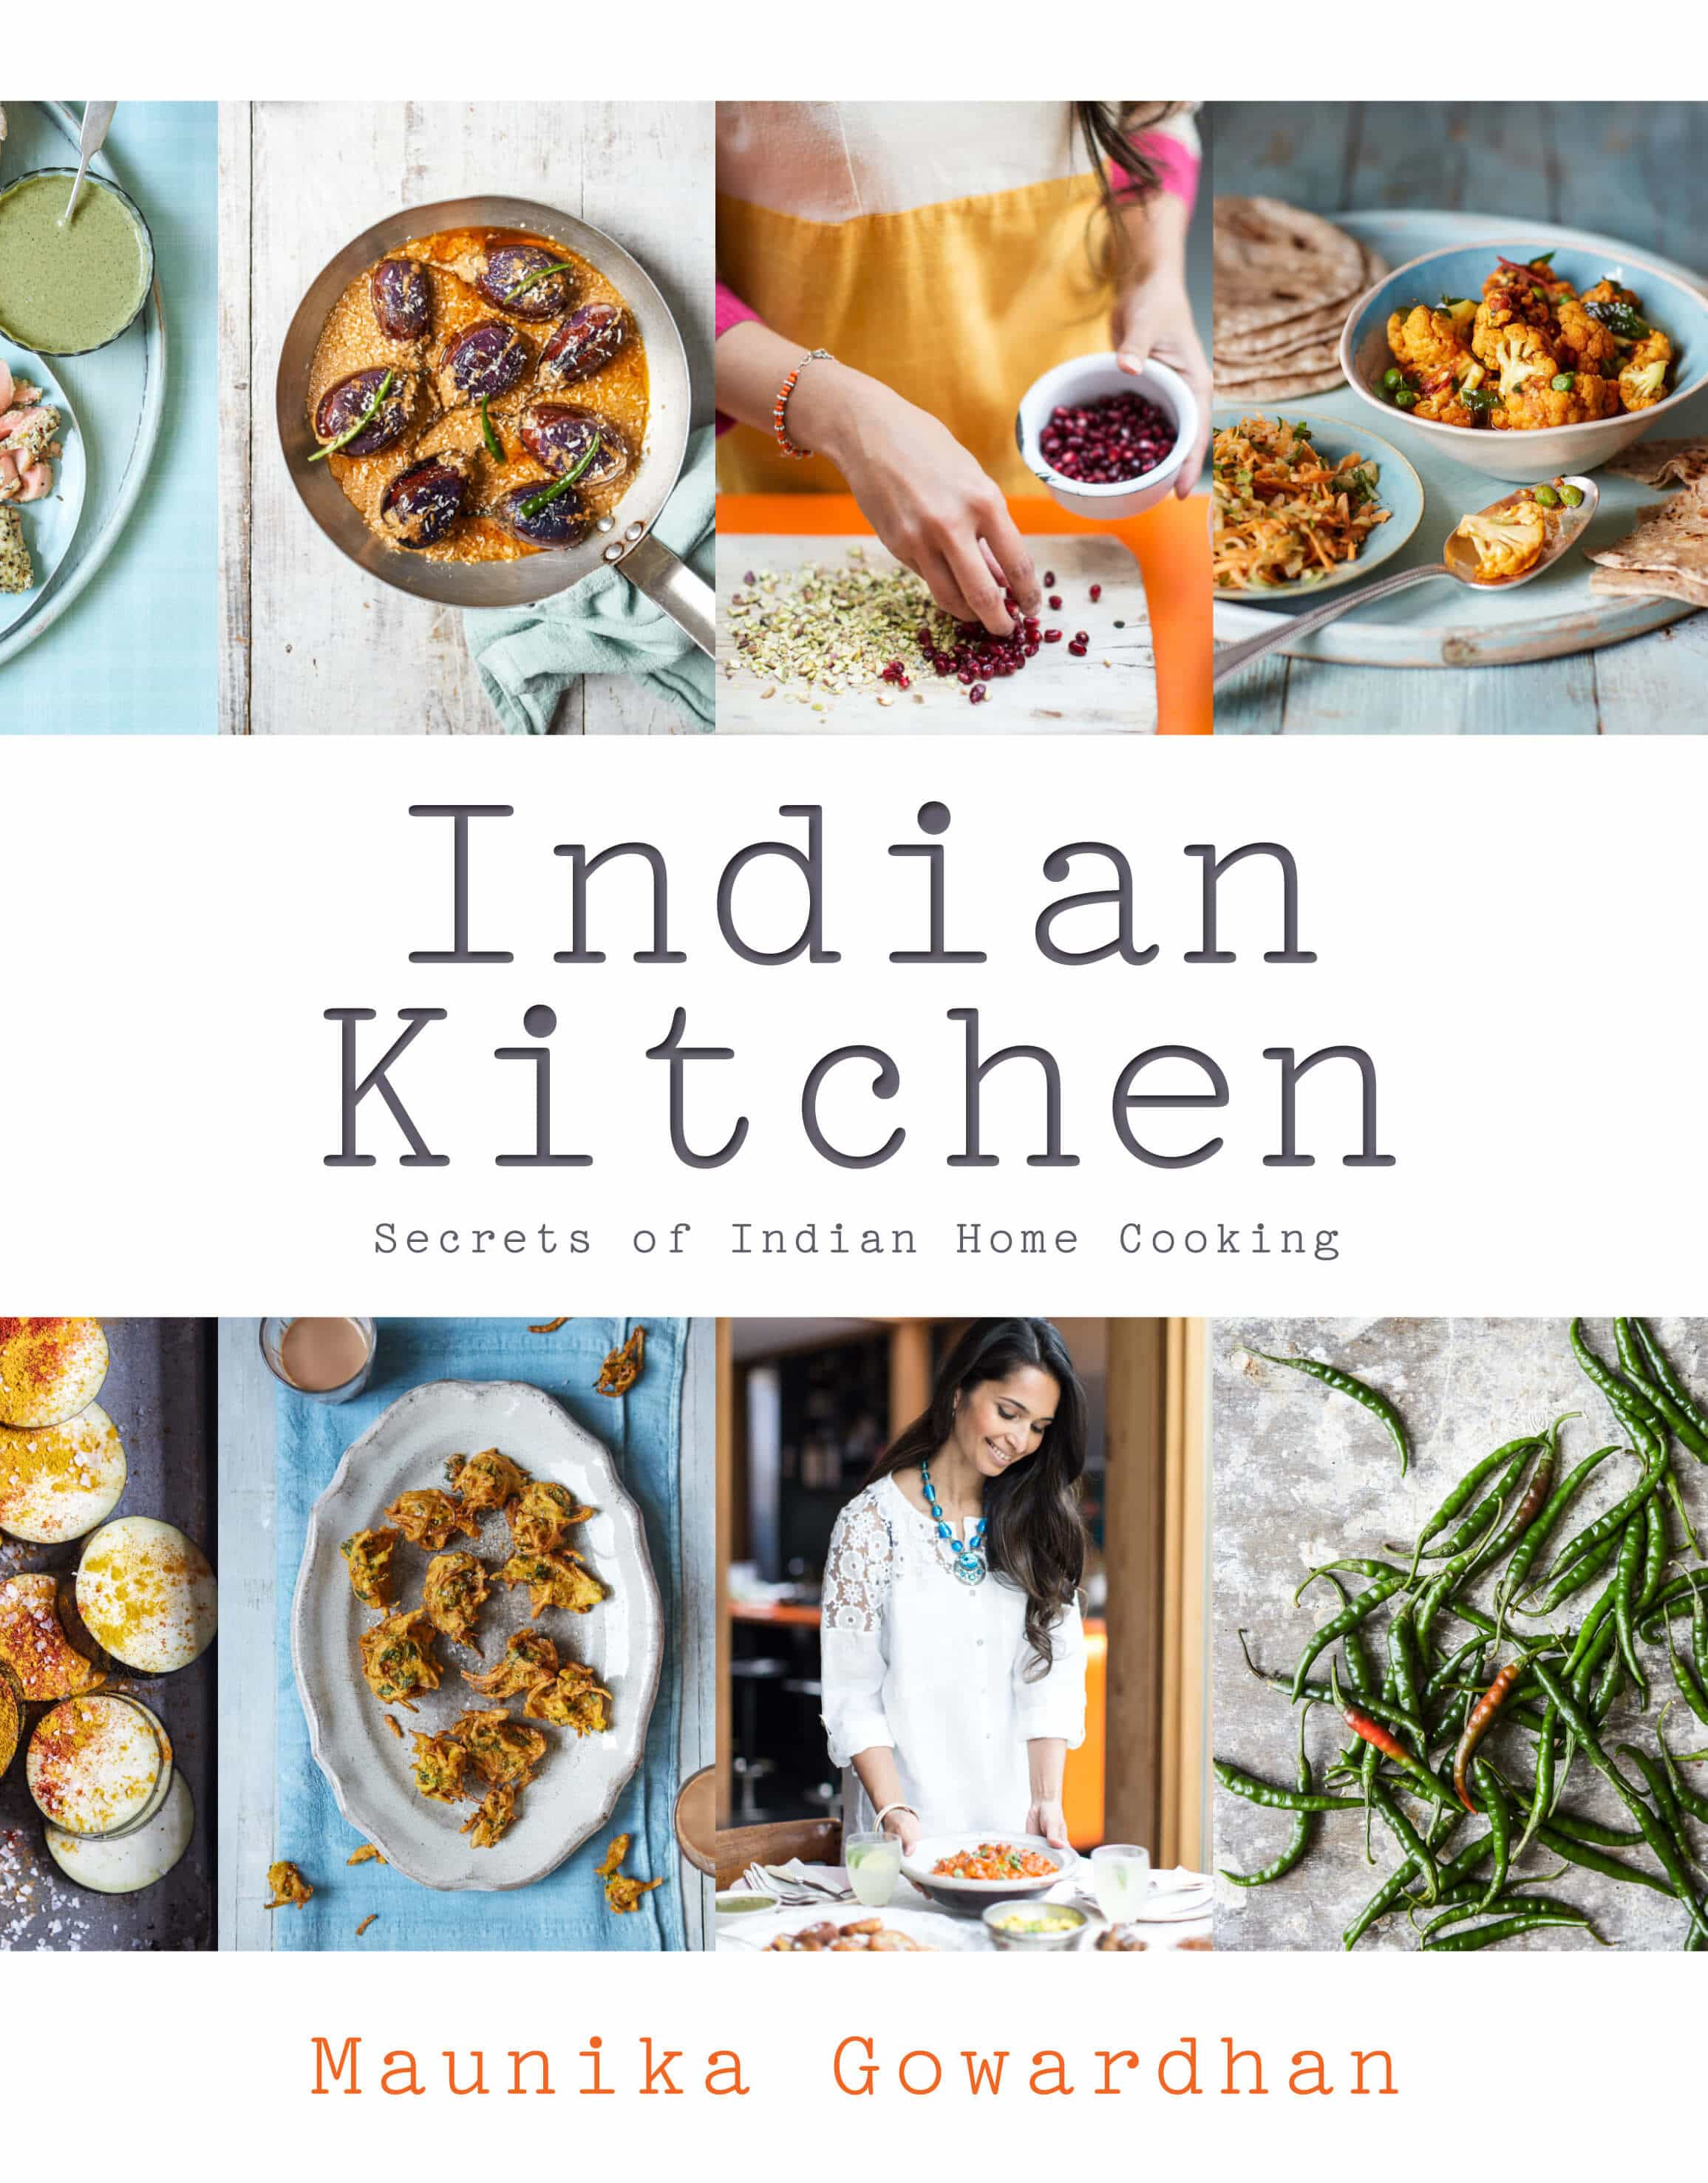 Cook Book Cover Uk ~ My debut cookbook lifestyle maunika gowardhan